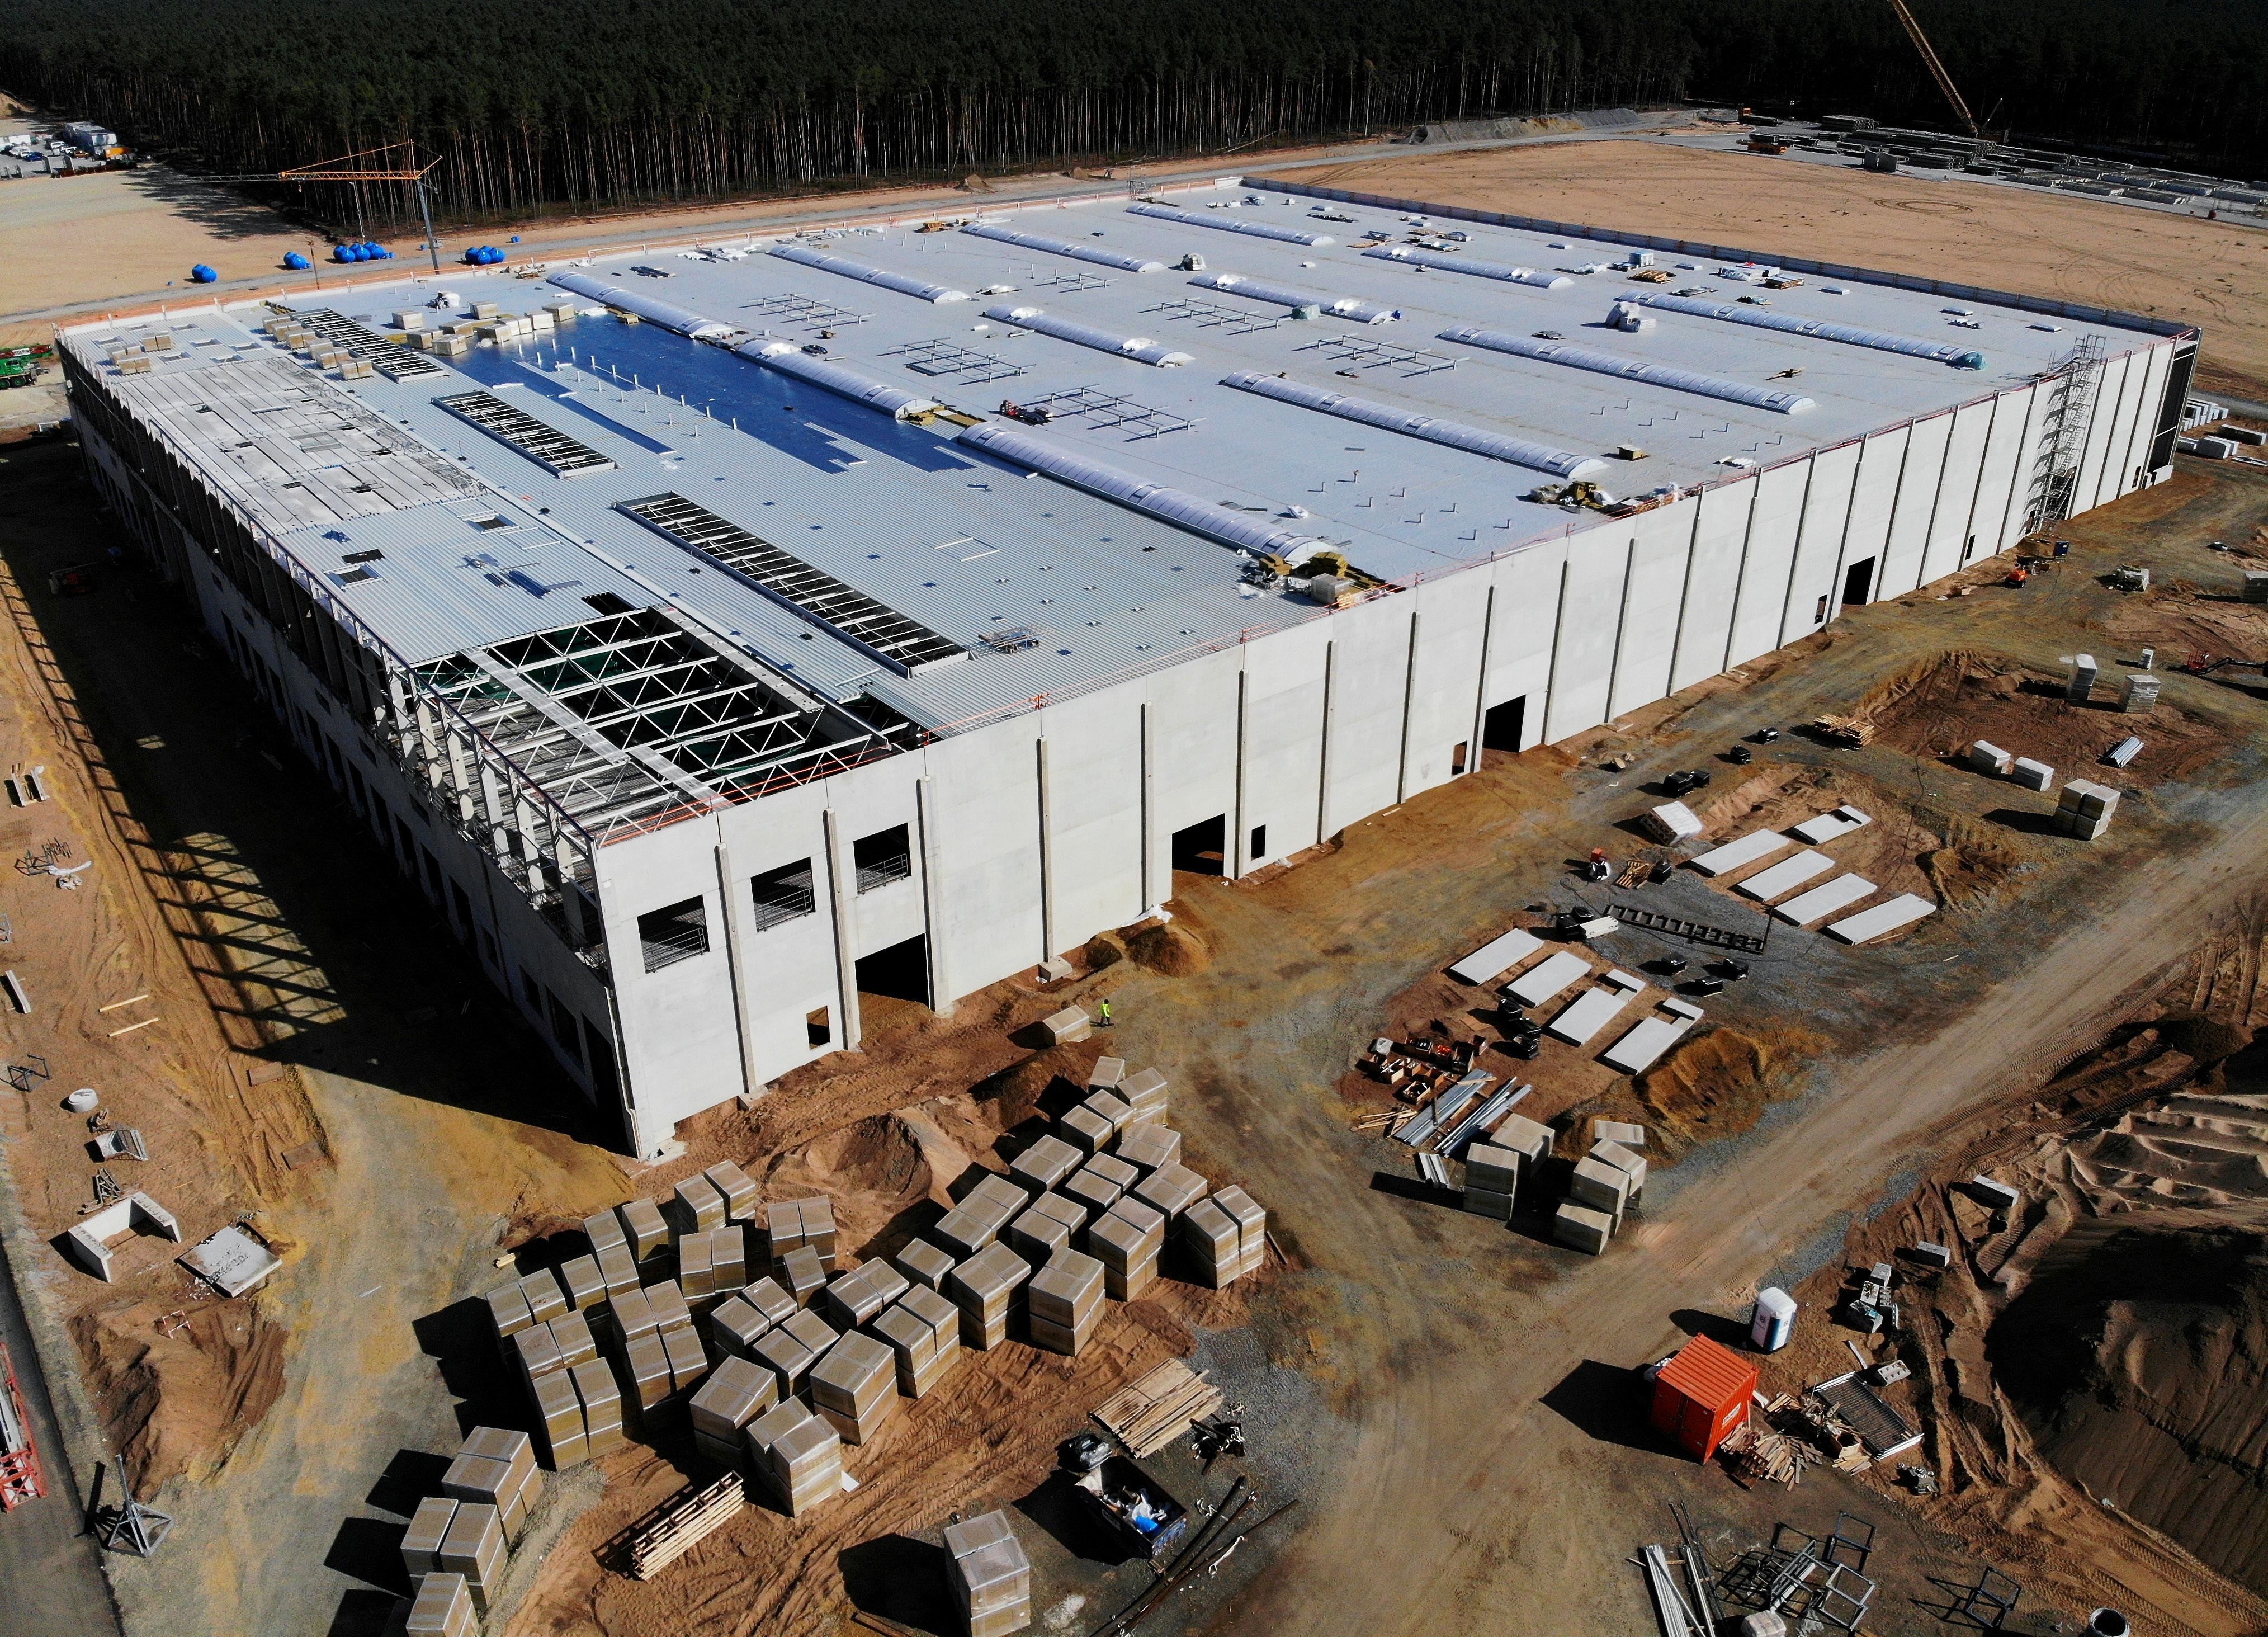 The construction site of the future Tesla Gigafactory is seen in Gruenheide near Berlin, Germany, September 19, 2020. Picture taken with a drone. REUTERS/Hannibal Hanschke